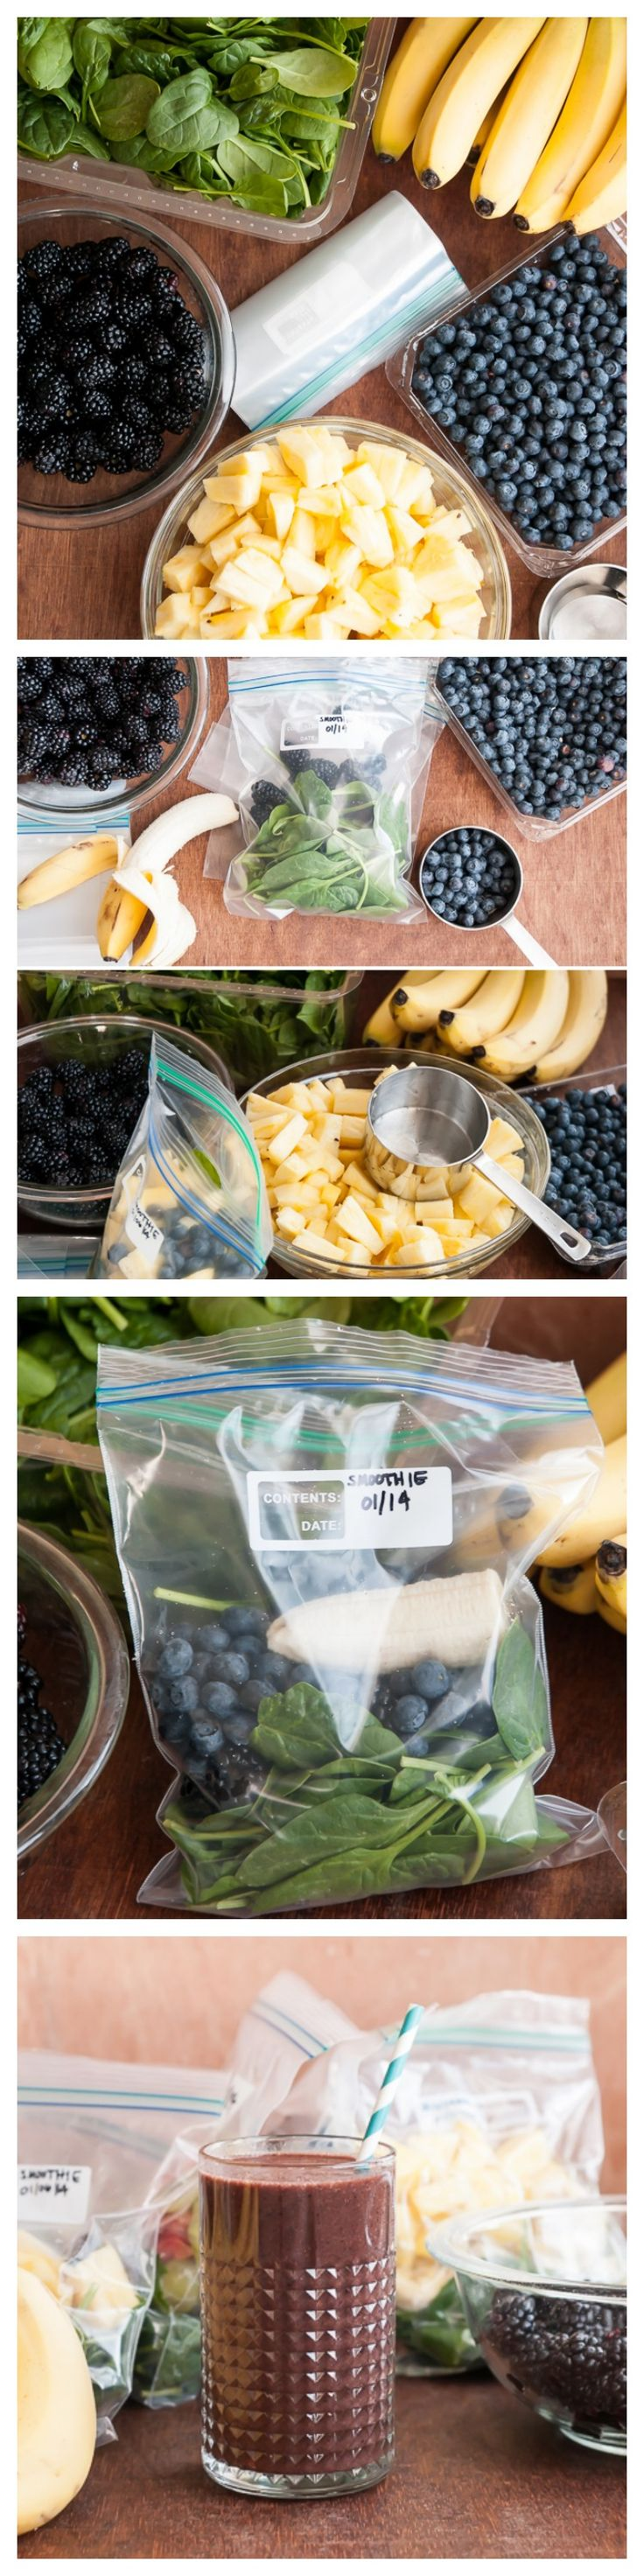 MAKE A MONTH OF GREEN SMOOTHIES IN AN HOUR ........ Easy steps to prepare make-ahead frozen smoothie packs....